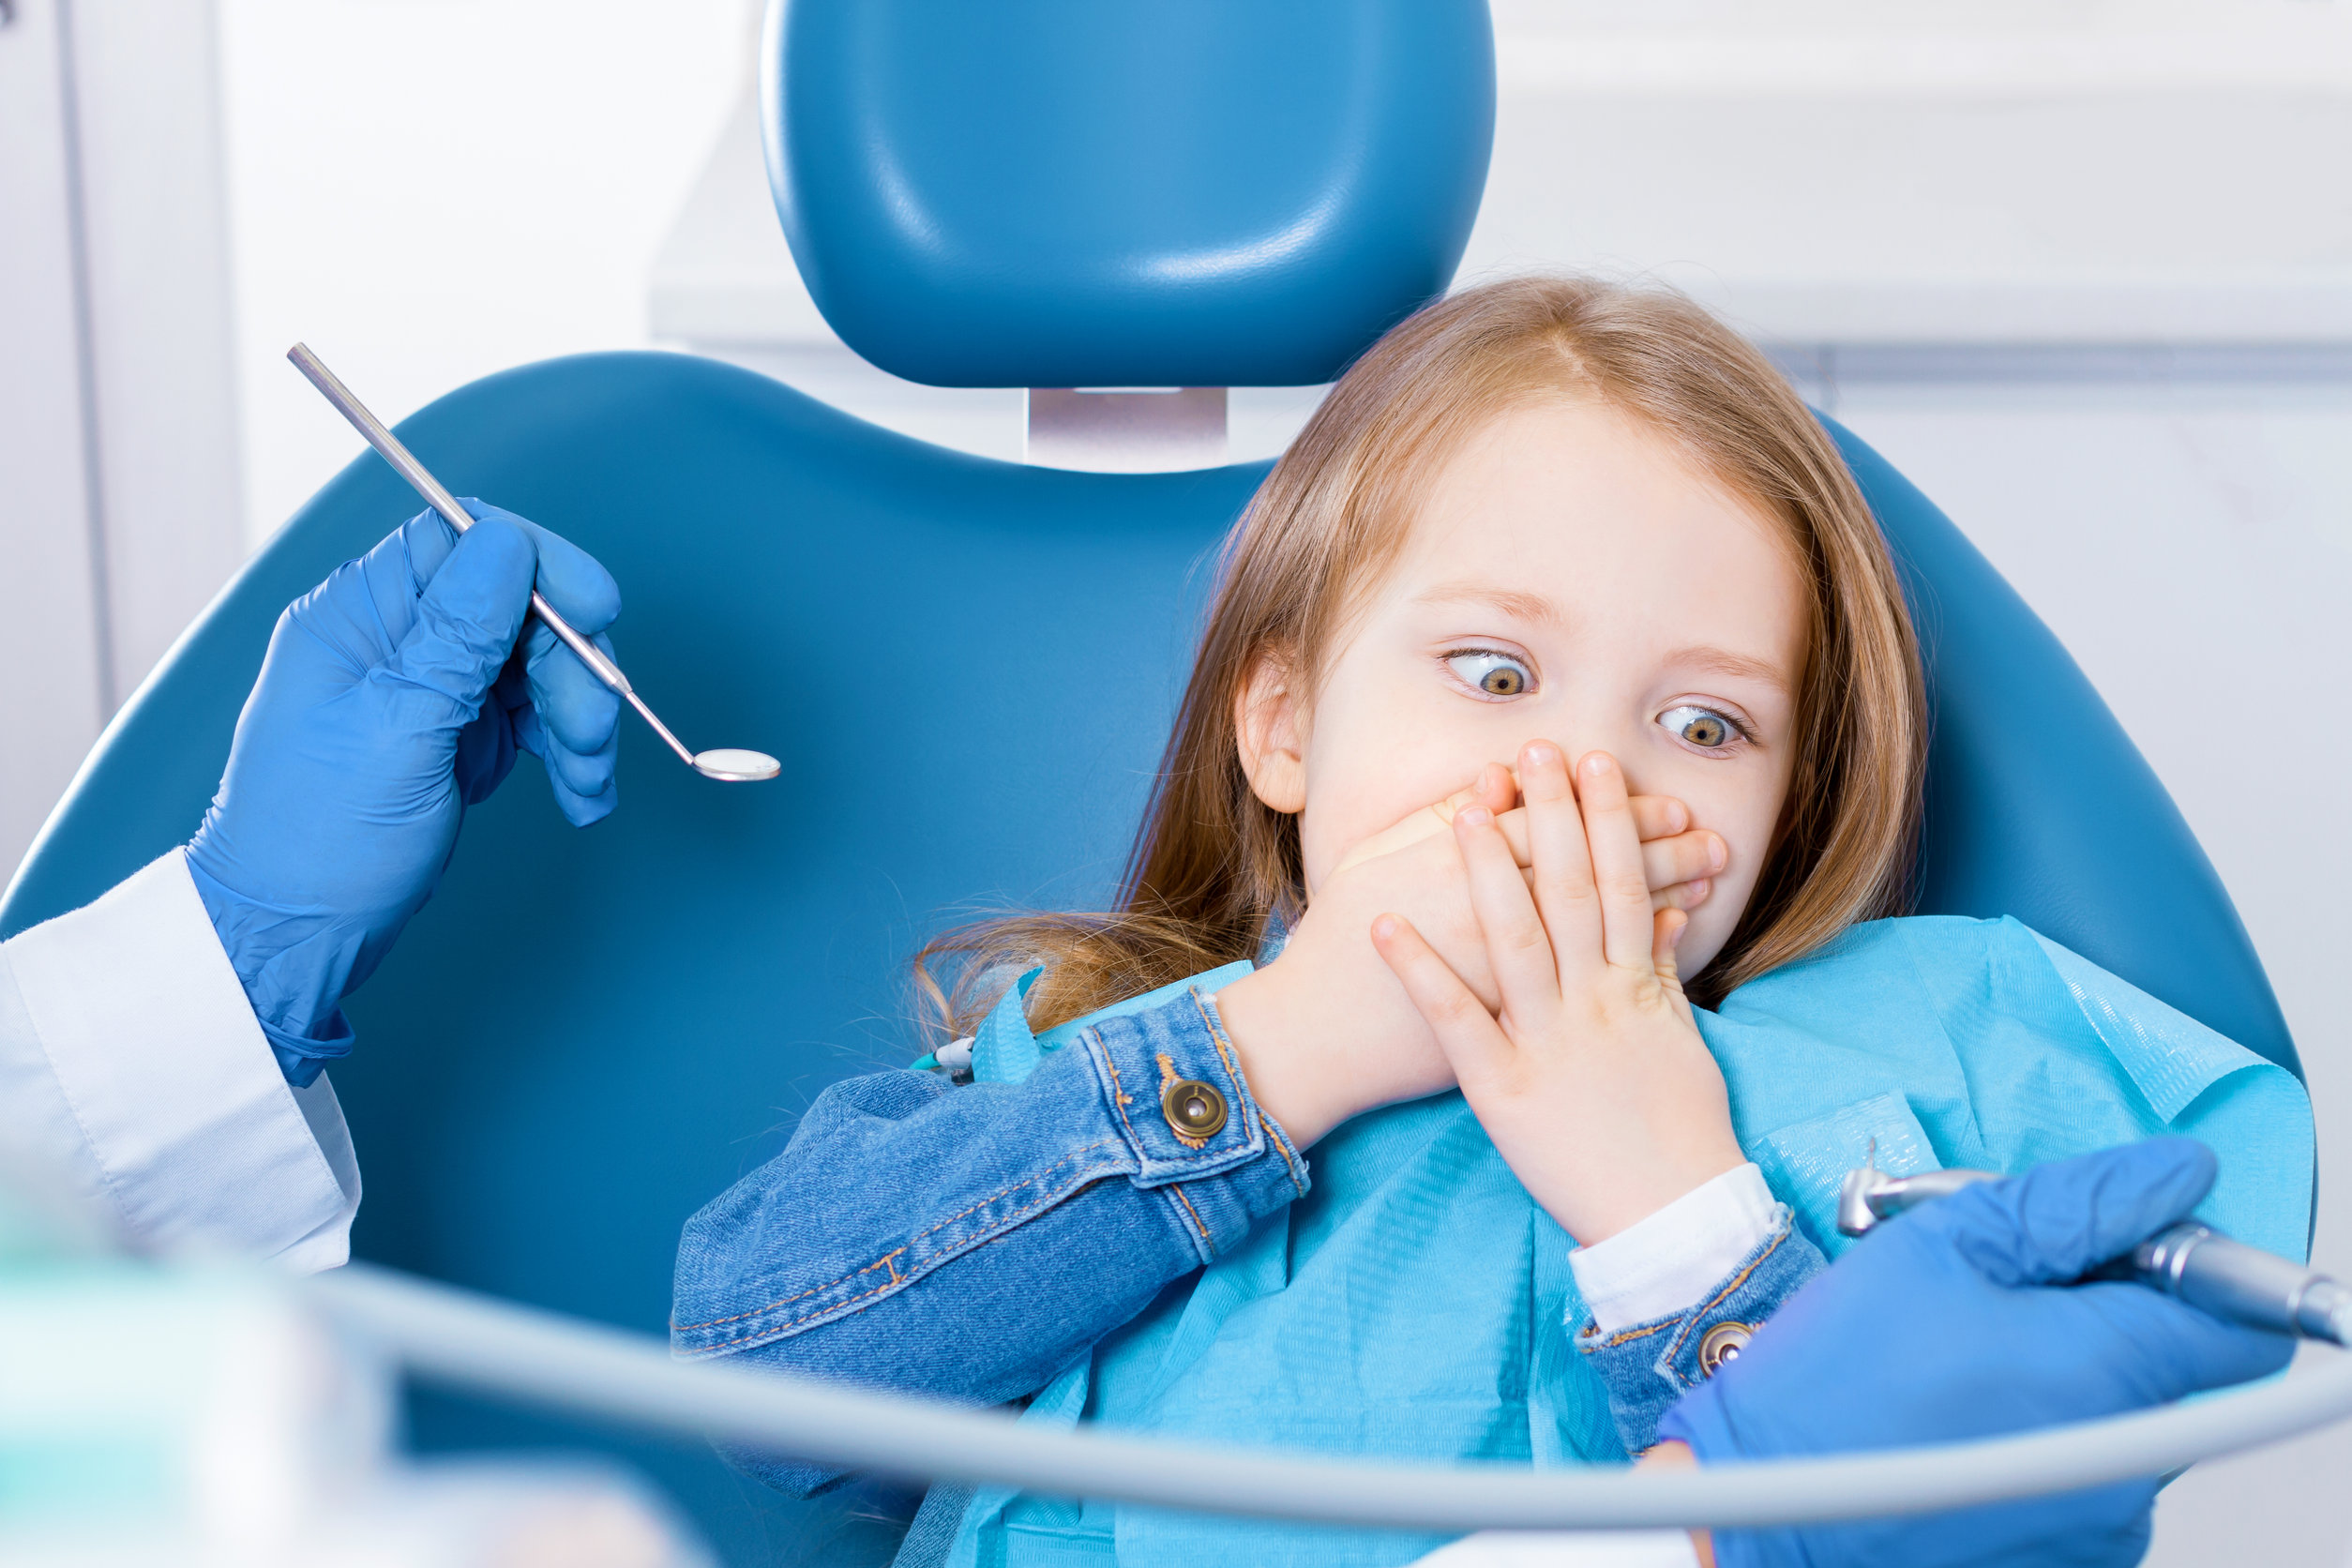 Little cute girl is closing her mouth with hands, preventing examination of teeth, because of fear of doctor. Child is sitting in chair in dental clinic, office. Visiting dentist with children.